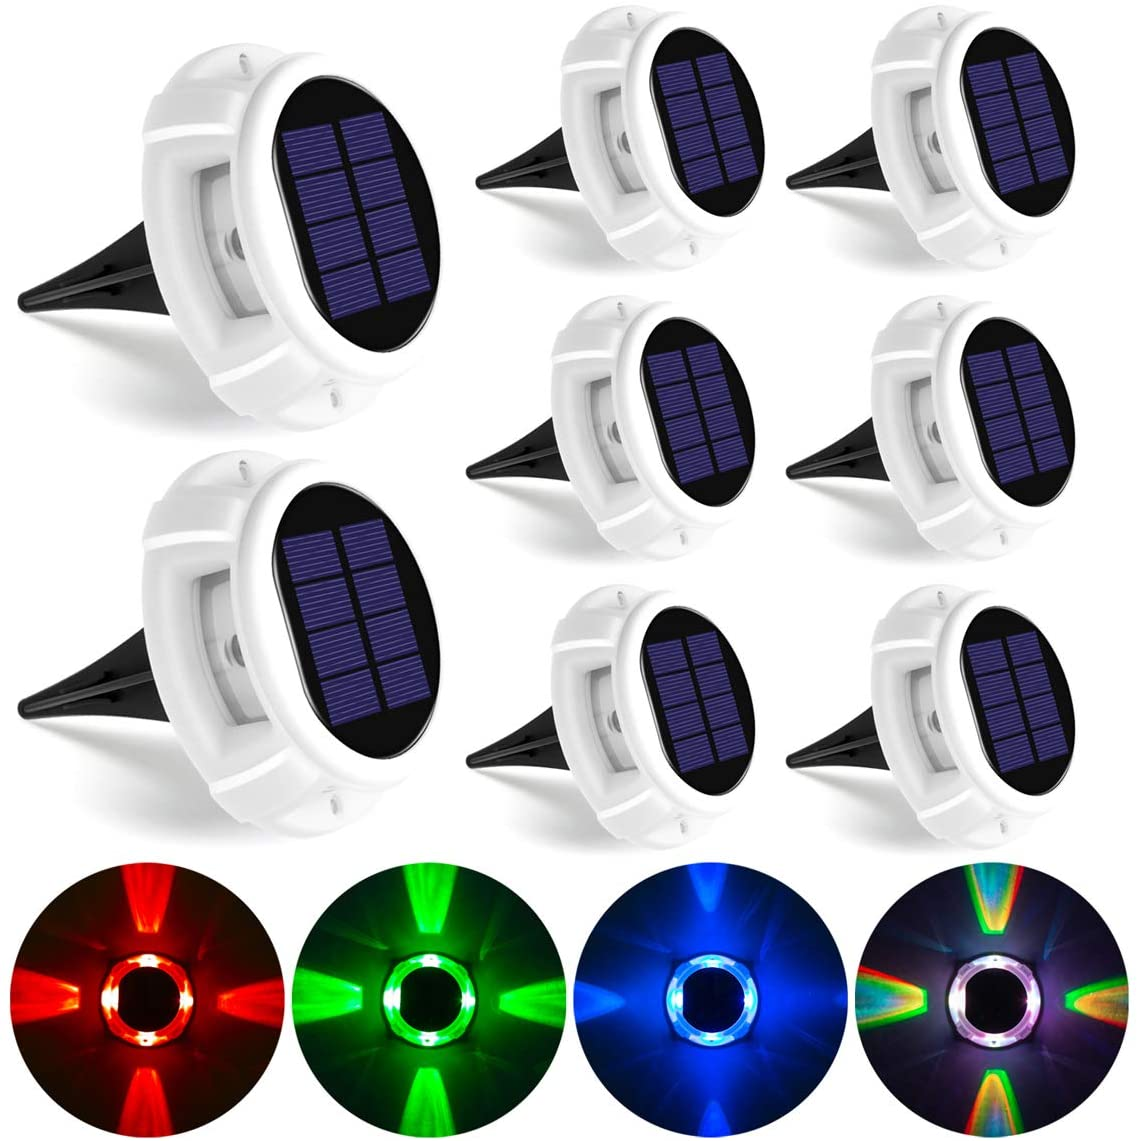 GIGALUMI Solar Deck Lights Outdoor, Solar Ground Lights with 5 Lighting Modes, Bright RGB Color Waterproof Disk Lights for Dock, Garden, Ground, Stair, Driveway, Pathway, Landscape(8 Pack)